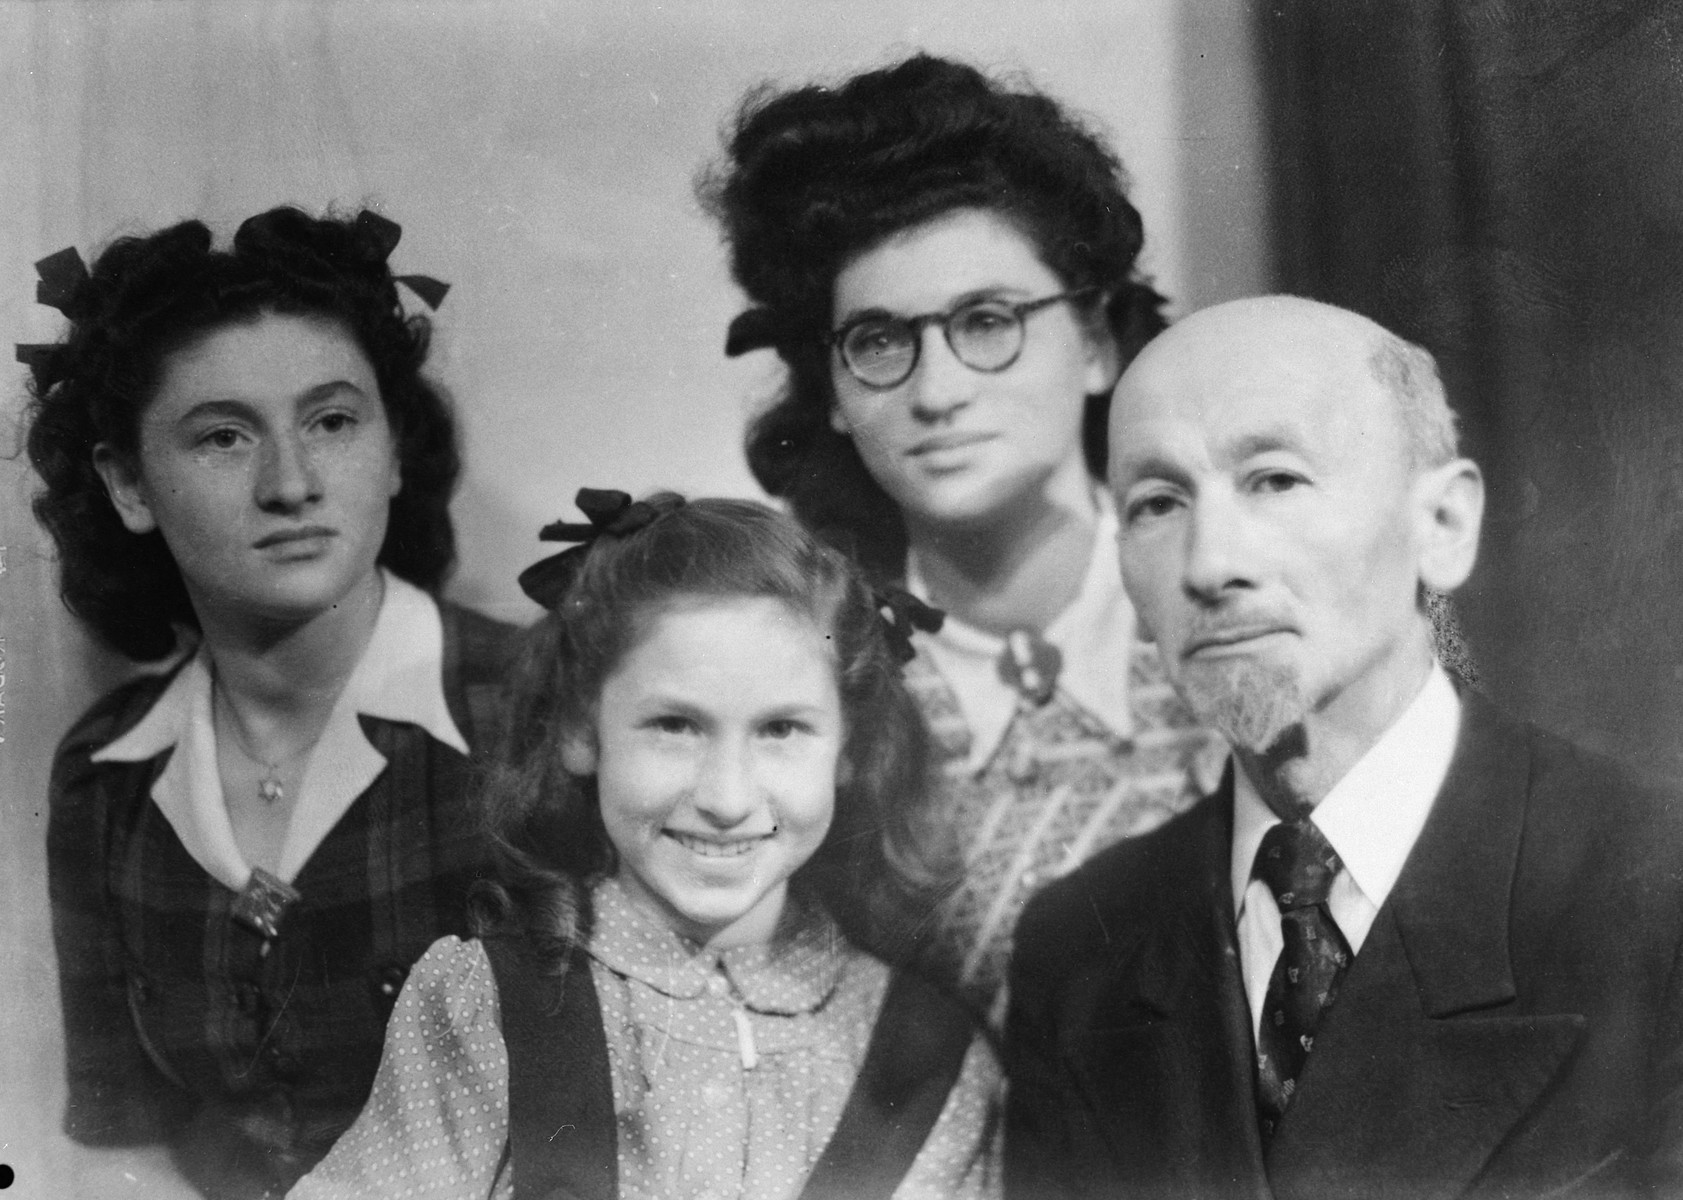 Studio portrait of a Jewish family in Metz after the war.  From left to right are Helene, Rivke, Rose and Eliezer Steinberg.